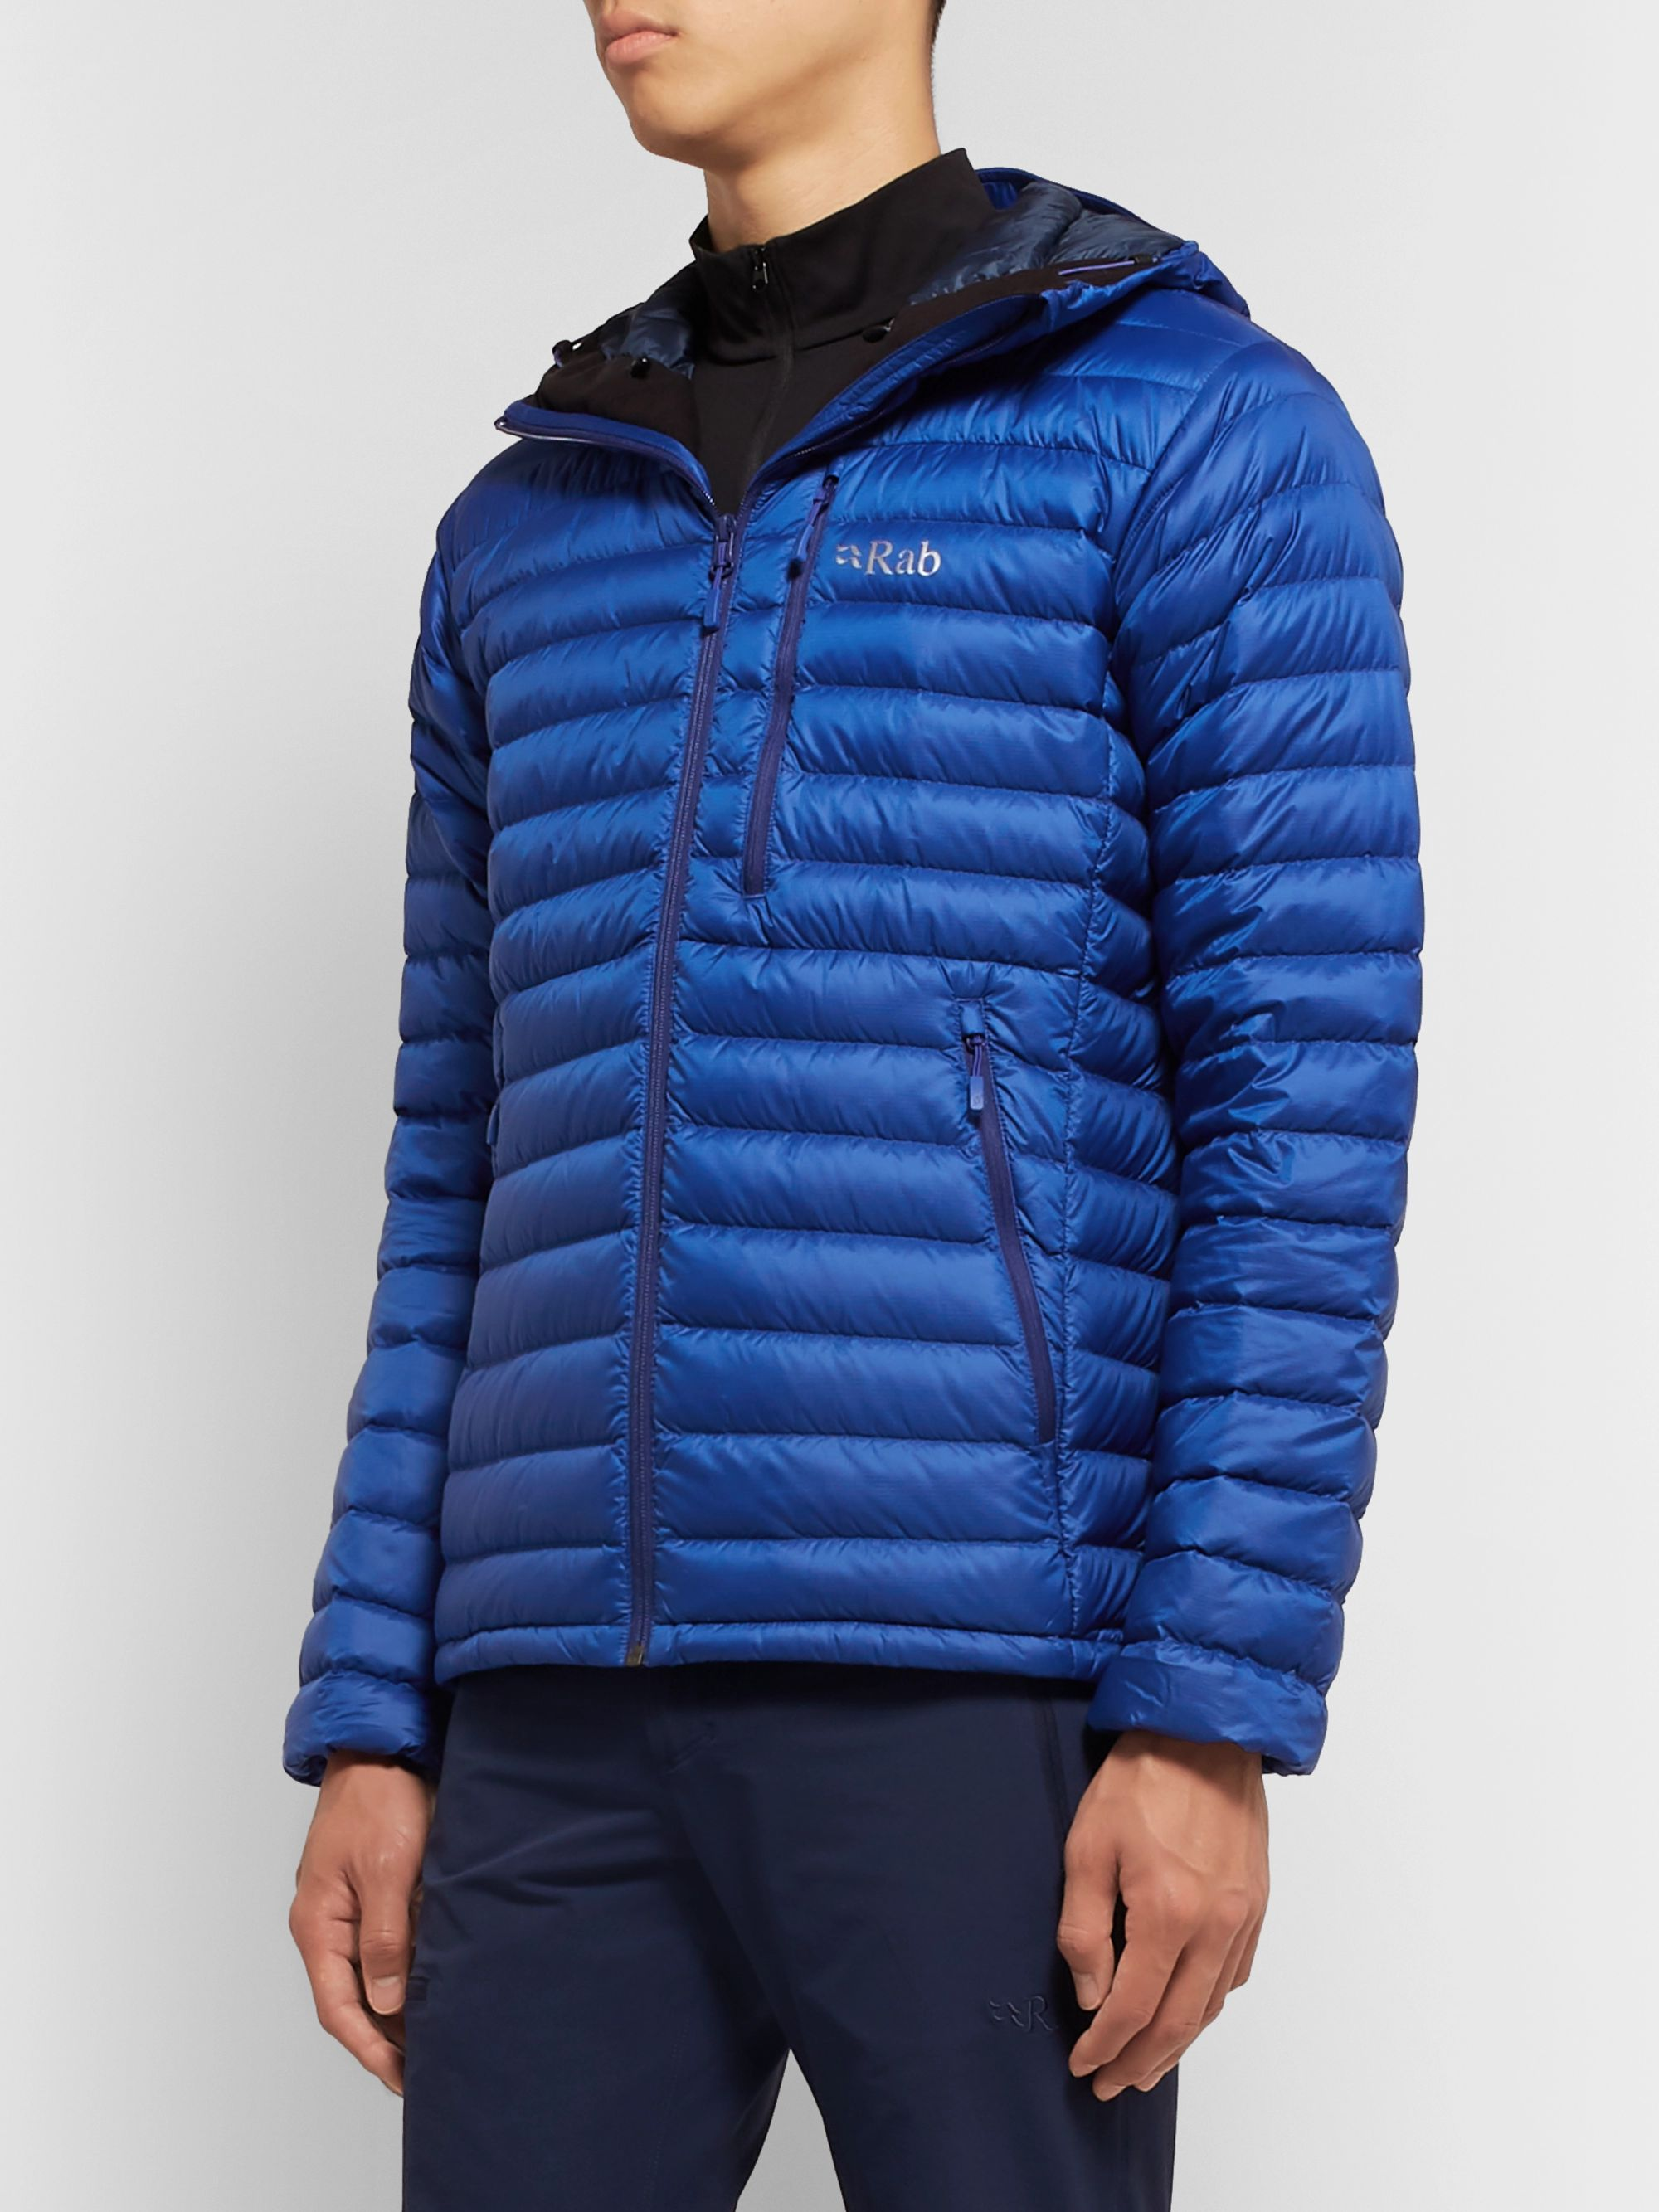 Rab Microlight Alpine Quilted Pertex Quantum Down Jacket